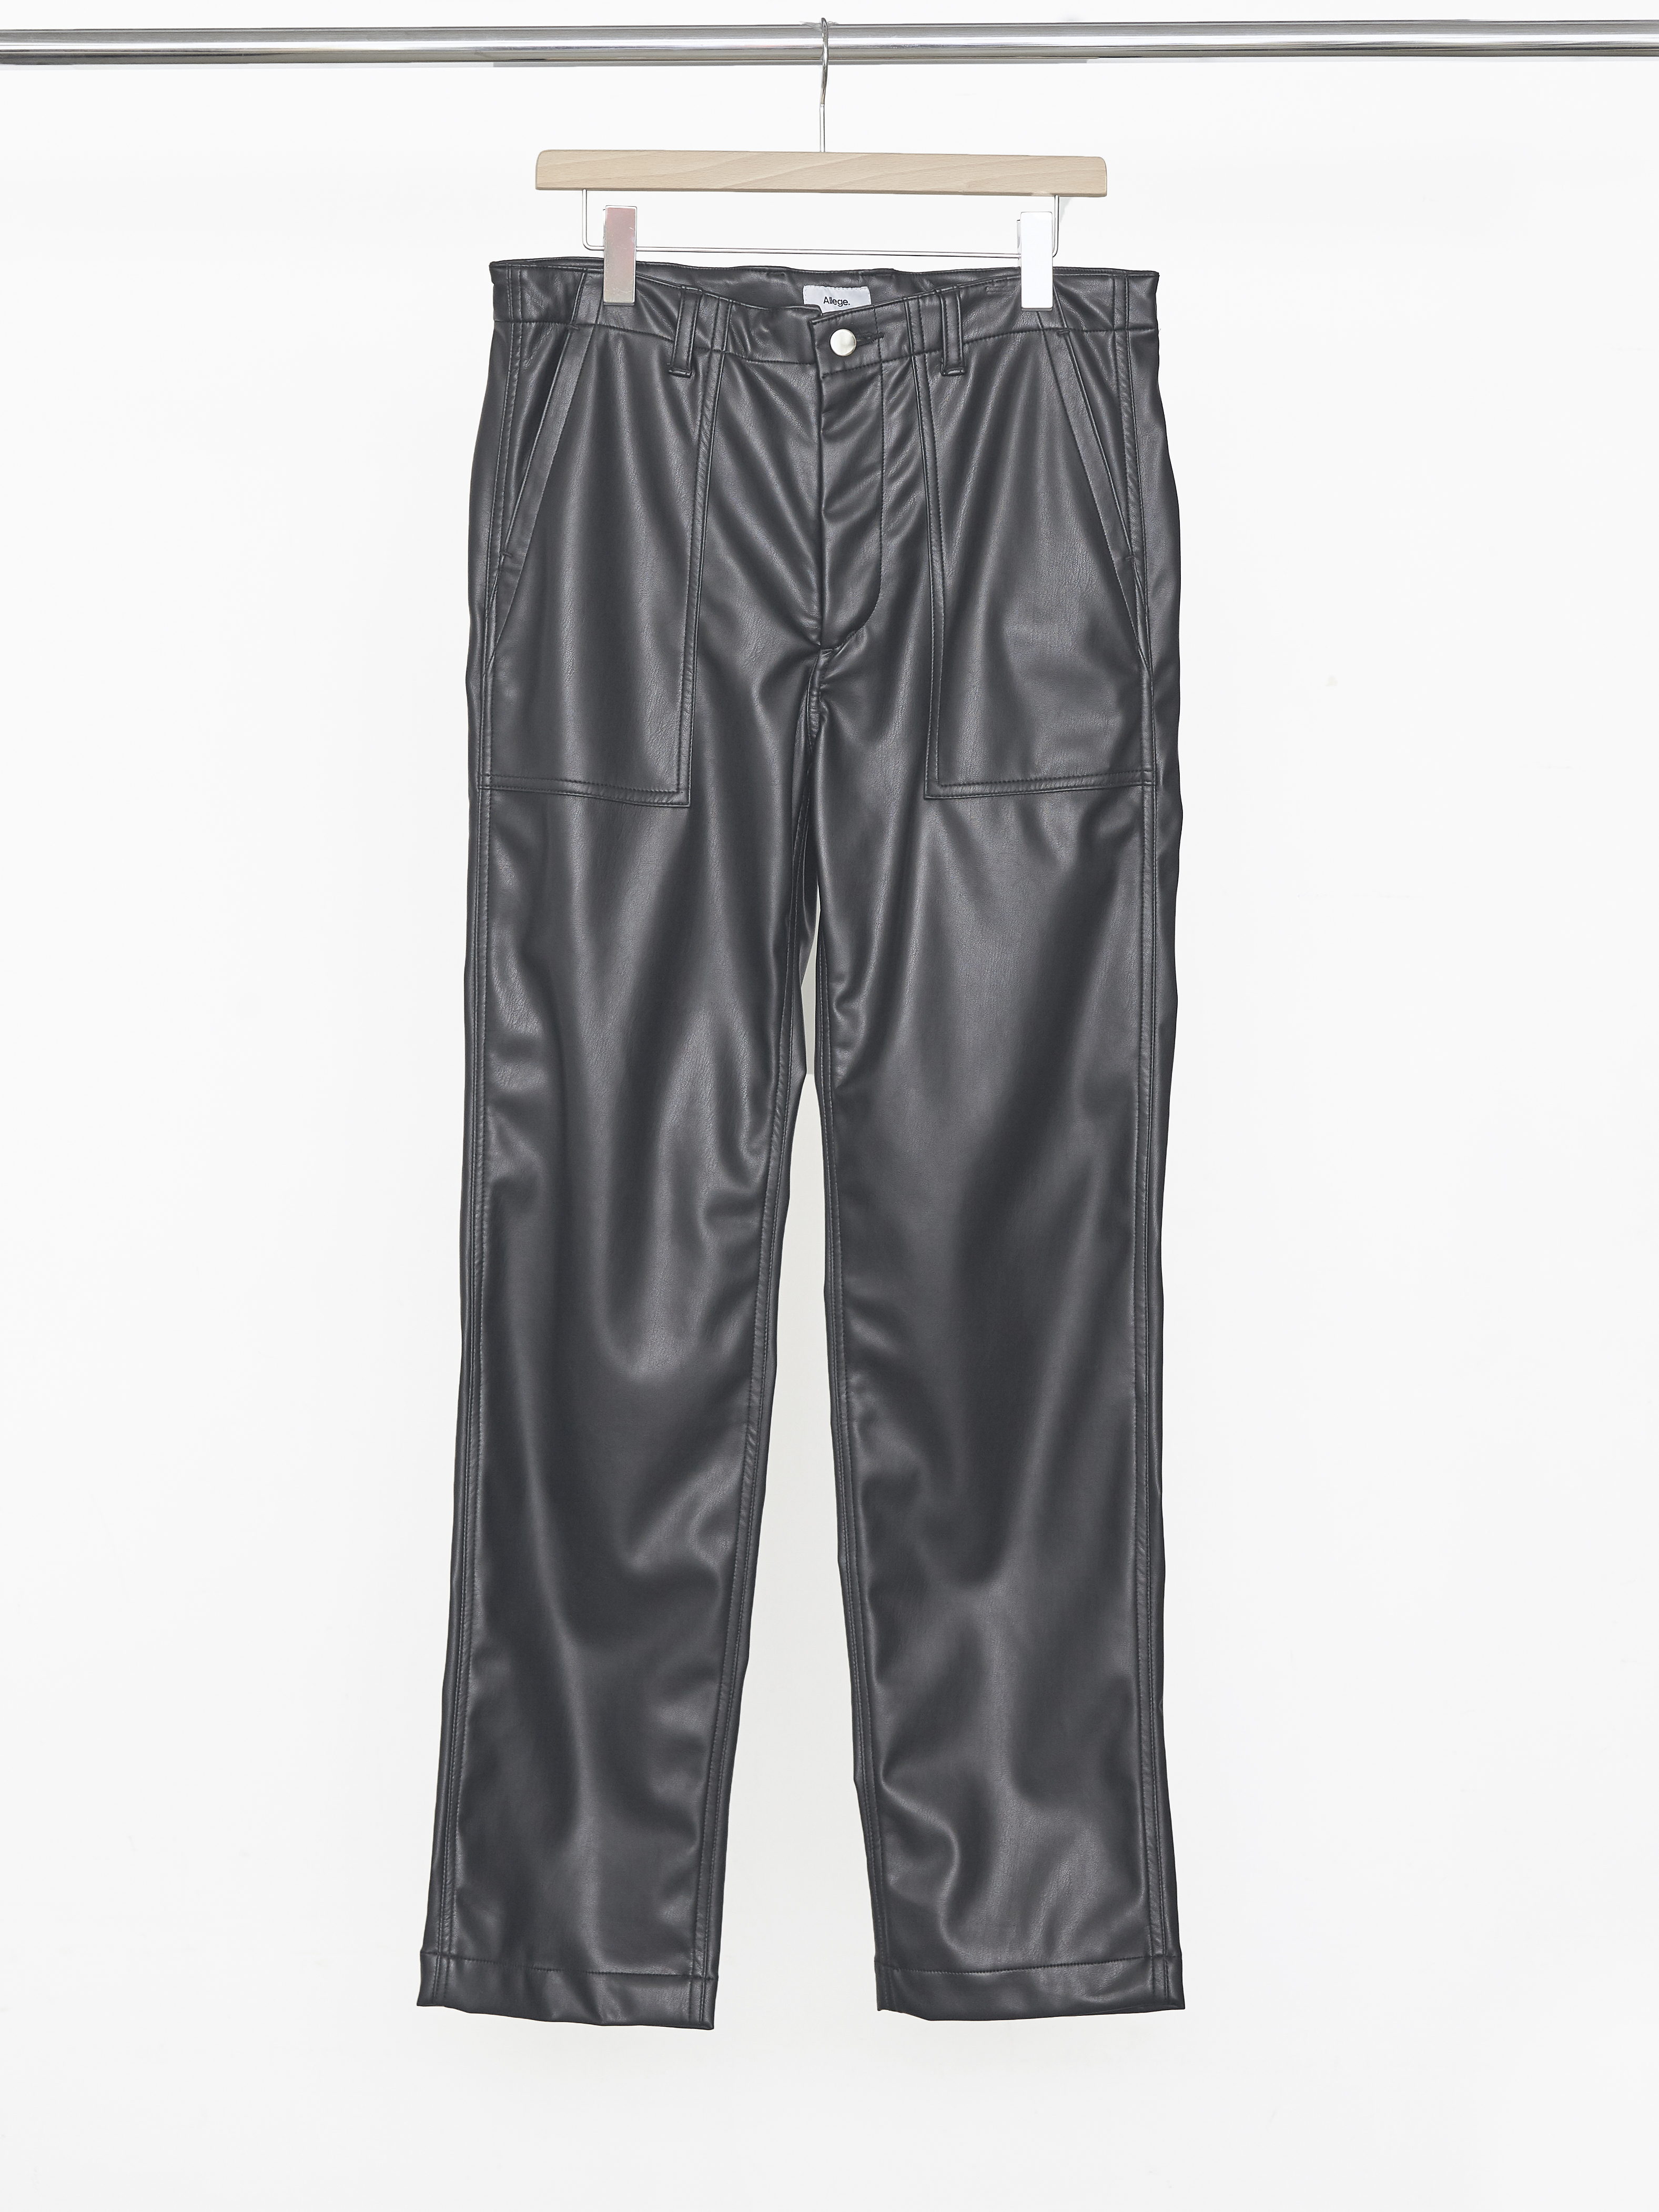 Synthetic Leather Baker Pants - Black